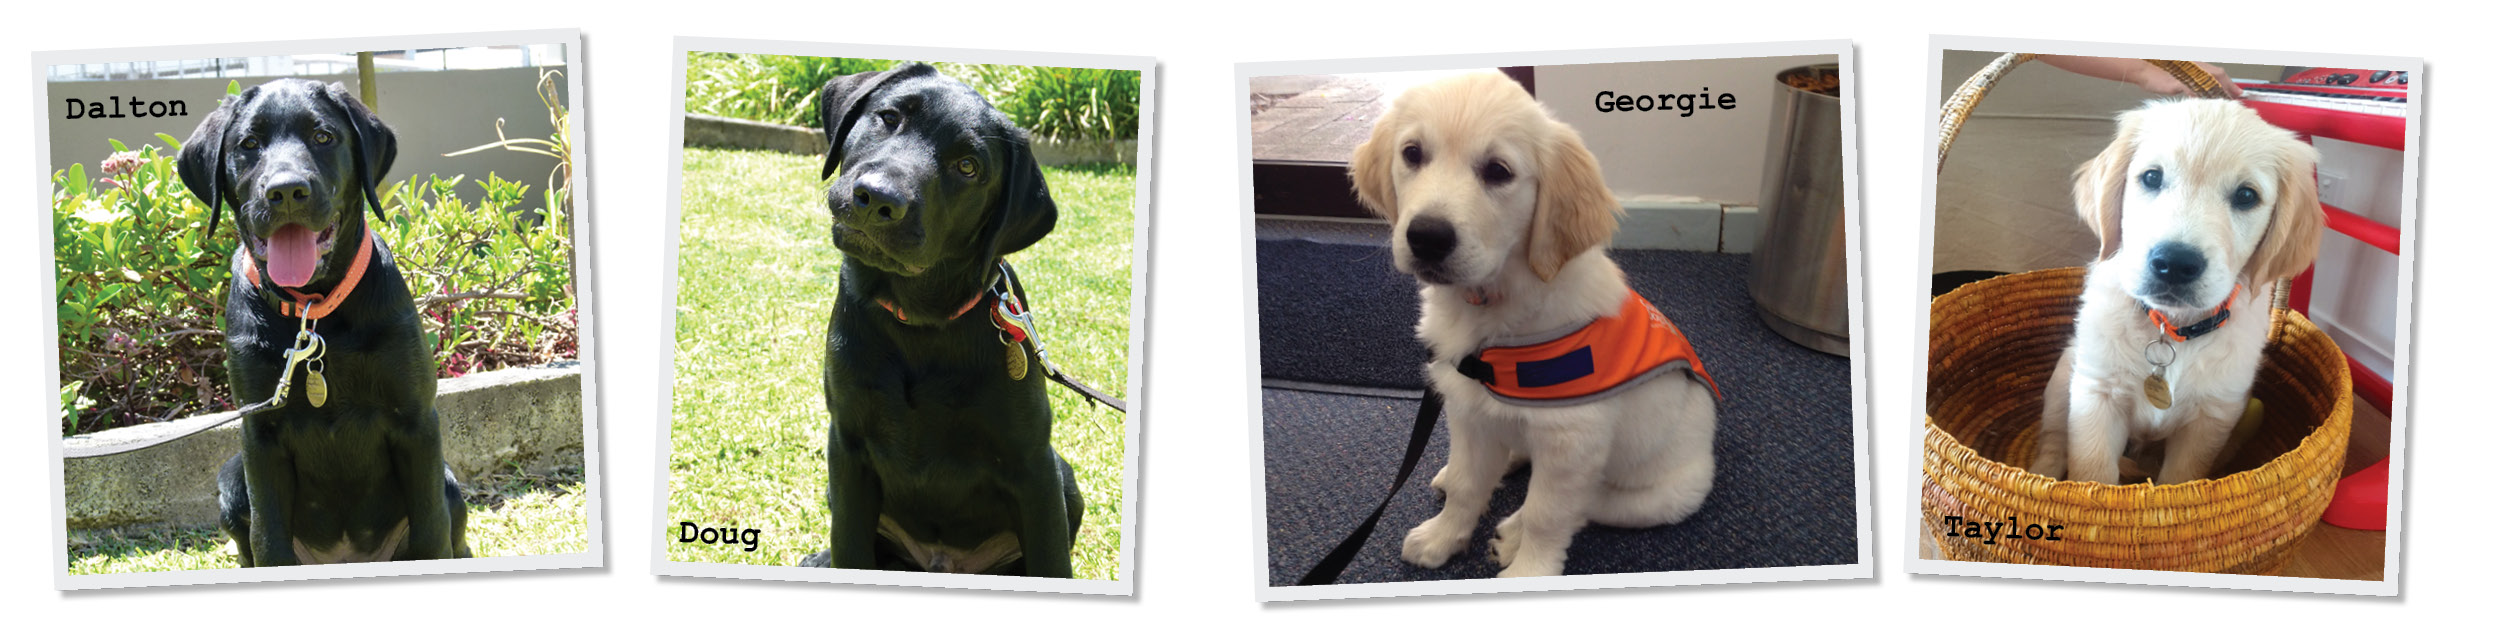 4 photos with captions. Black labrador puppy Dalton and his sibling Doug. Golden retriever puppy Georgie and her brother Taylor.